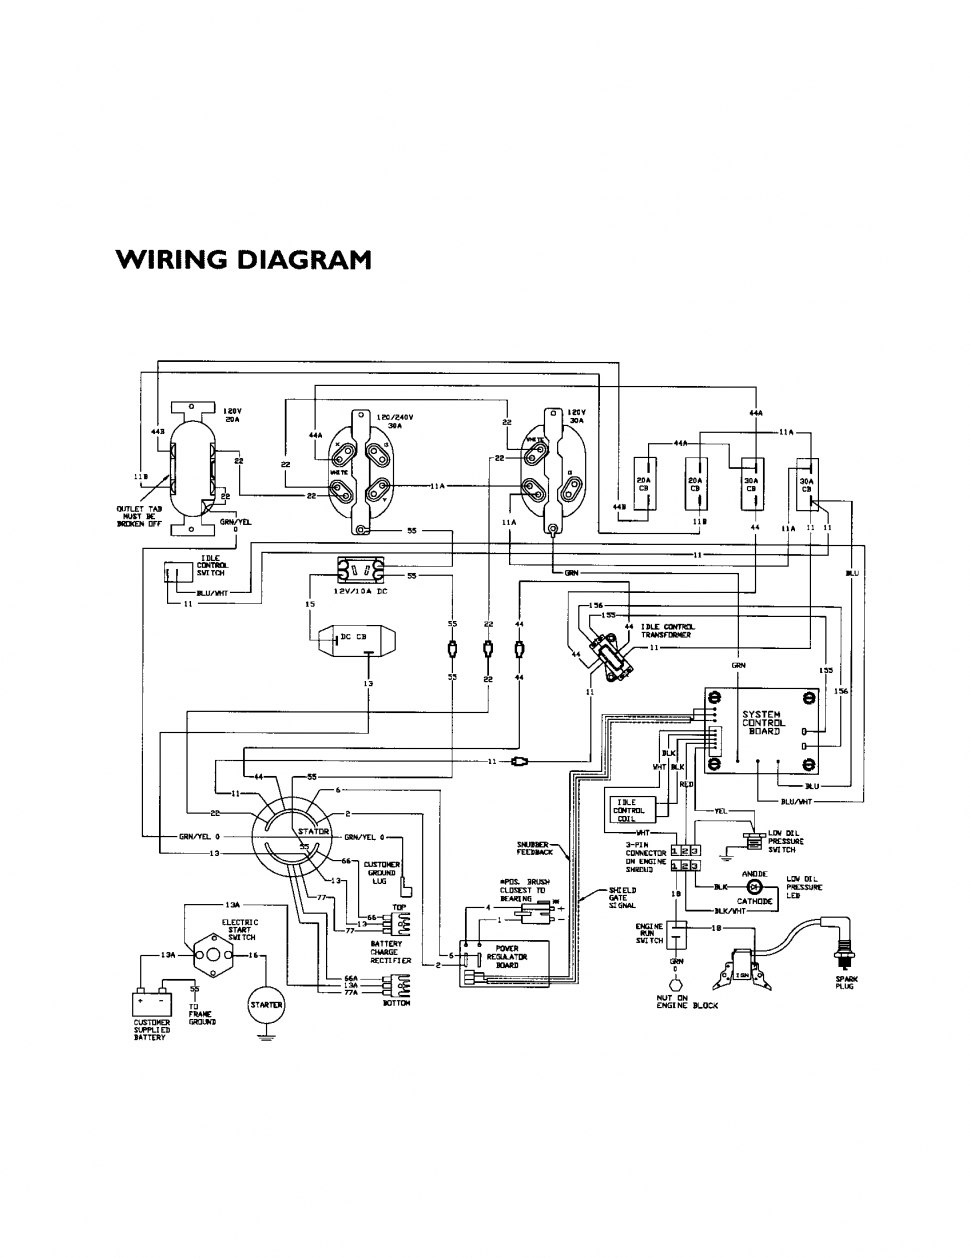 Eaton Transfer Switch Wiring Diagram - Simple Electrical Wiring Diagram Stunning Eaton Transfer Switches Ch48gen3060r 64 1000 Switch Wiring Diagram 34 19o